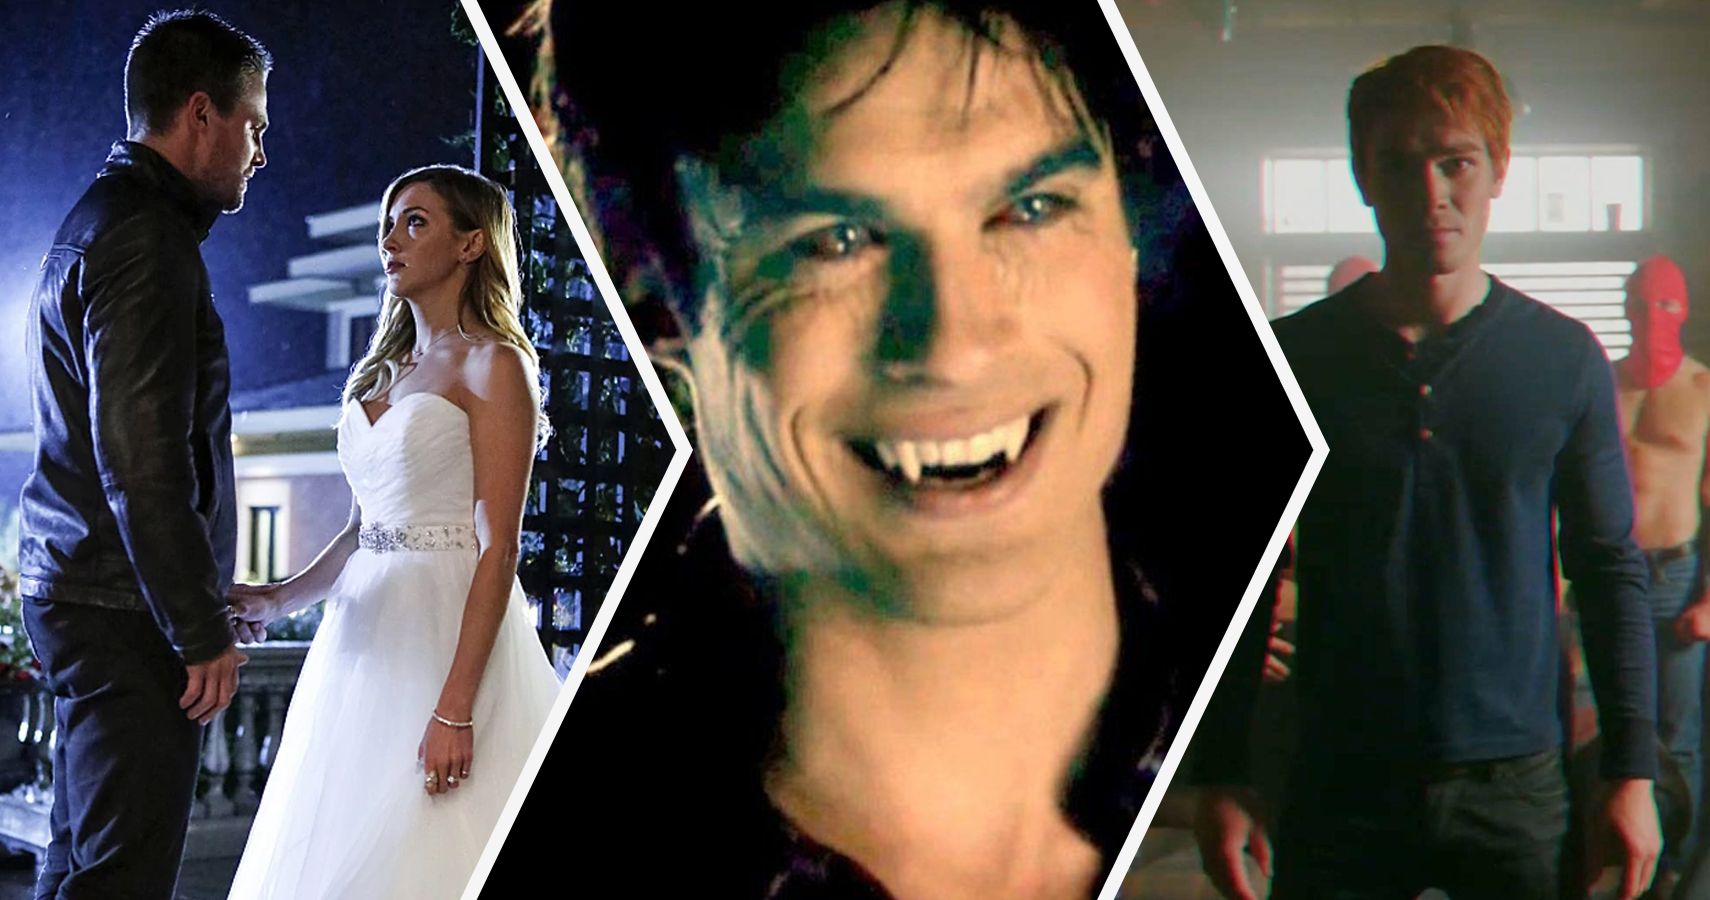 20 Huge Plot Holes In CW Shows That Even True Fans Can't Unsee